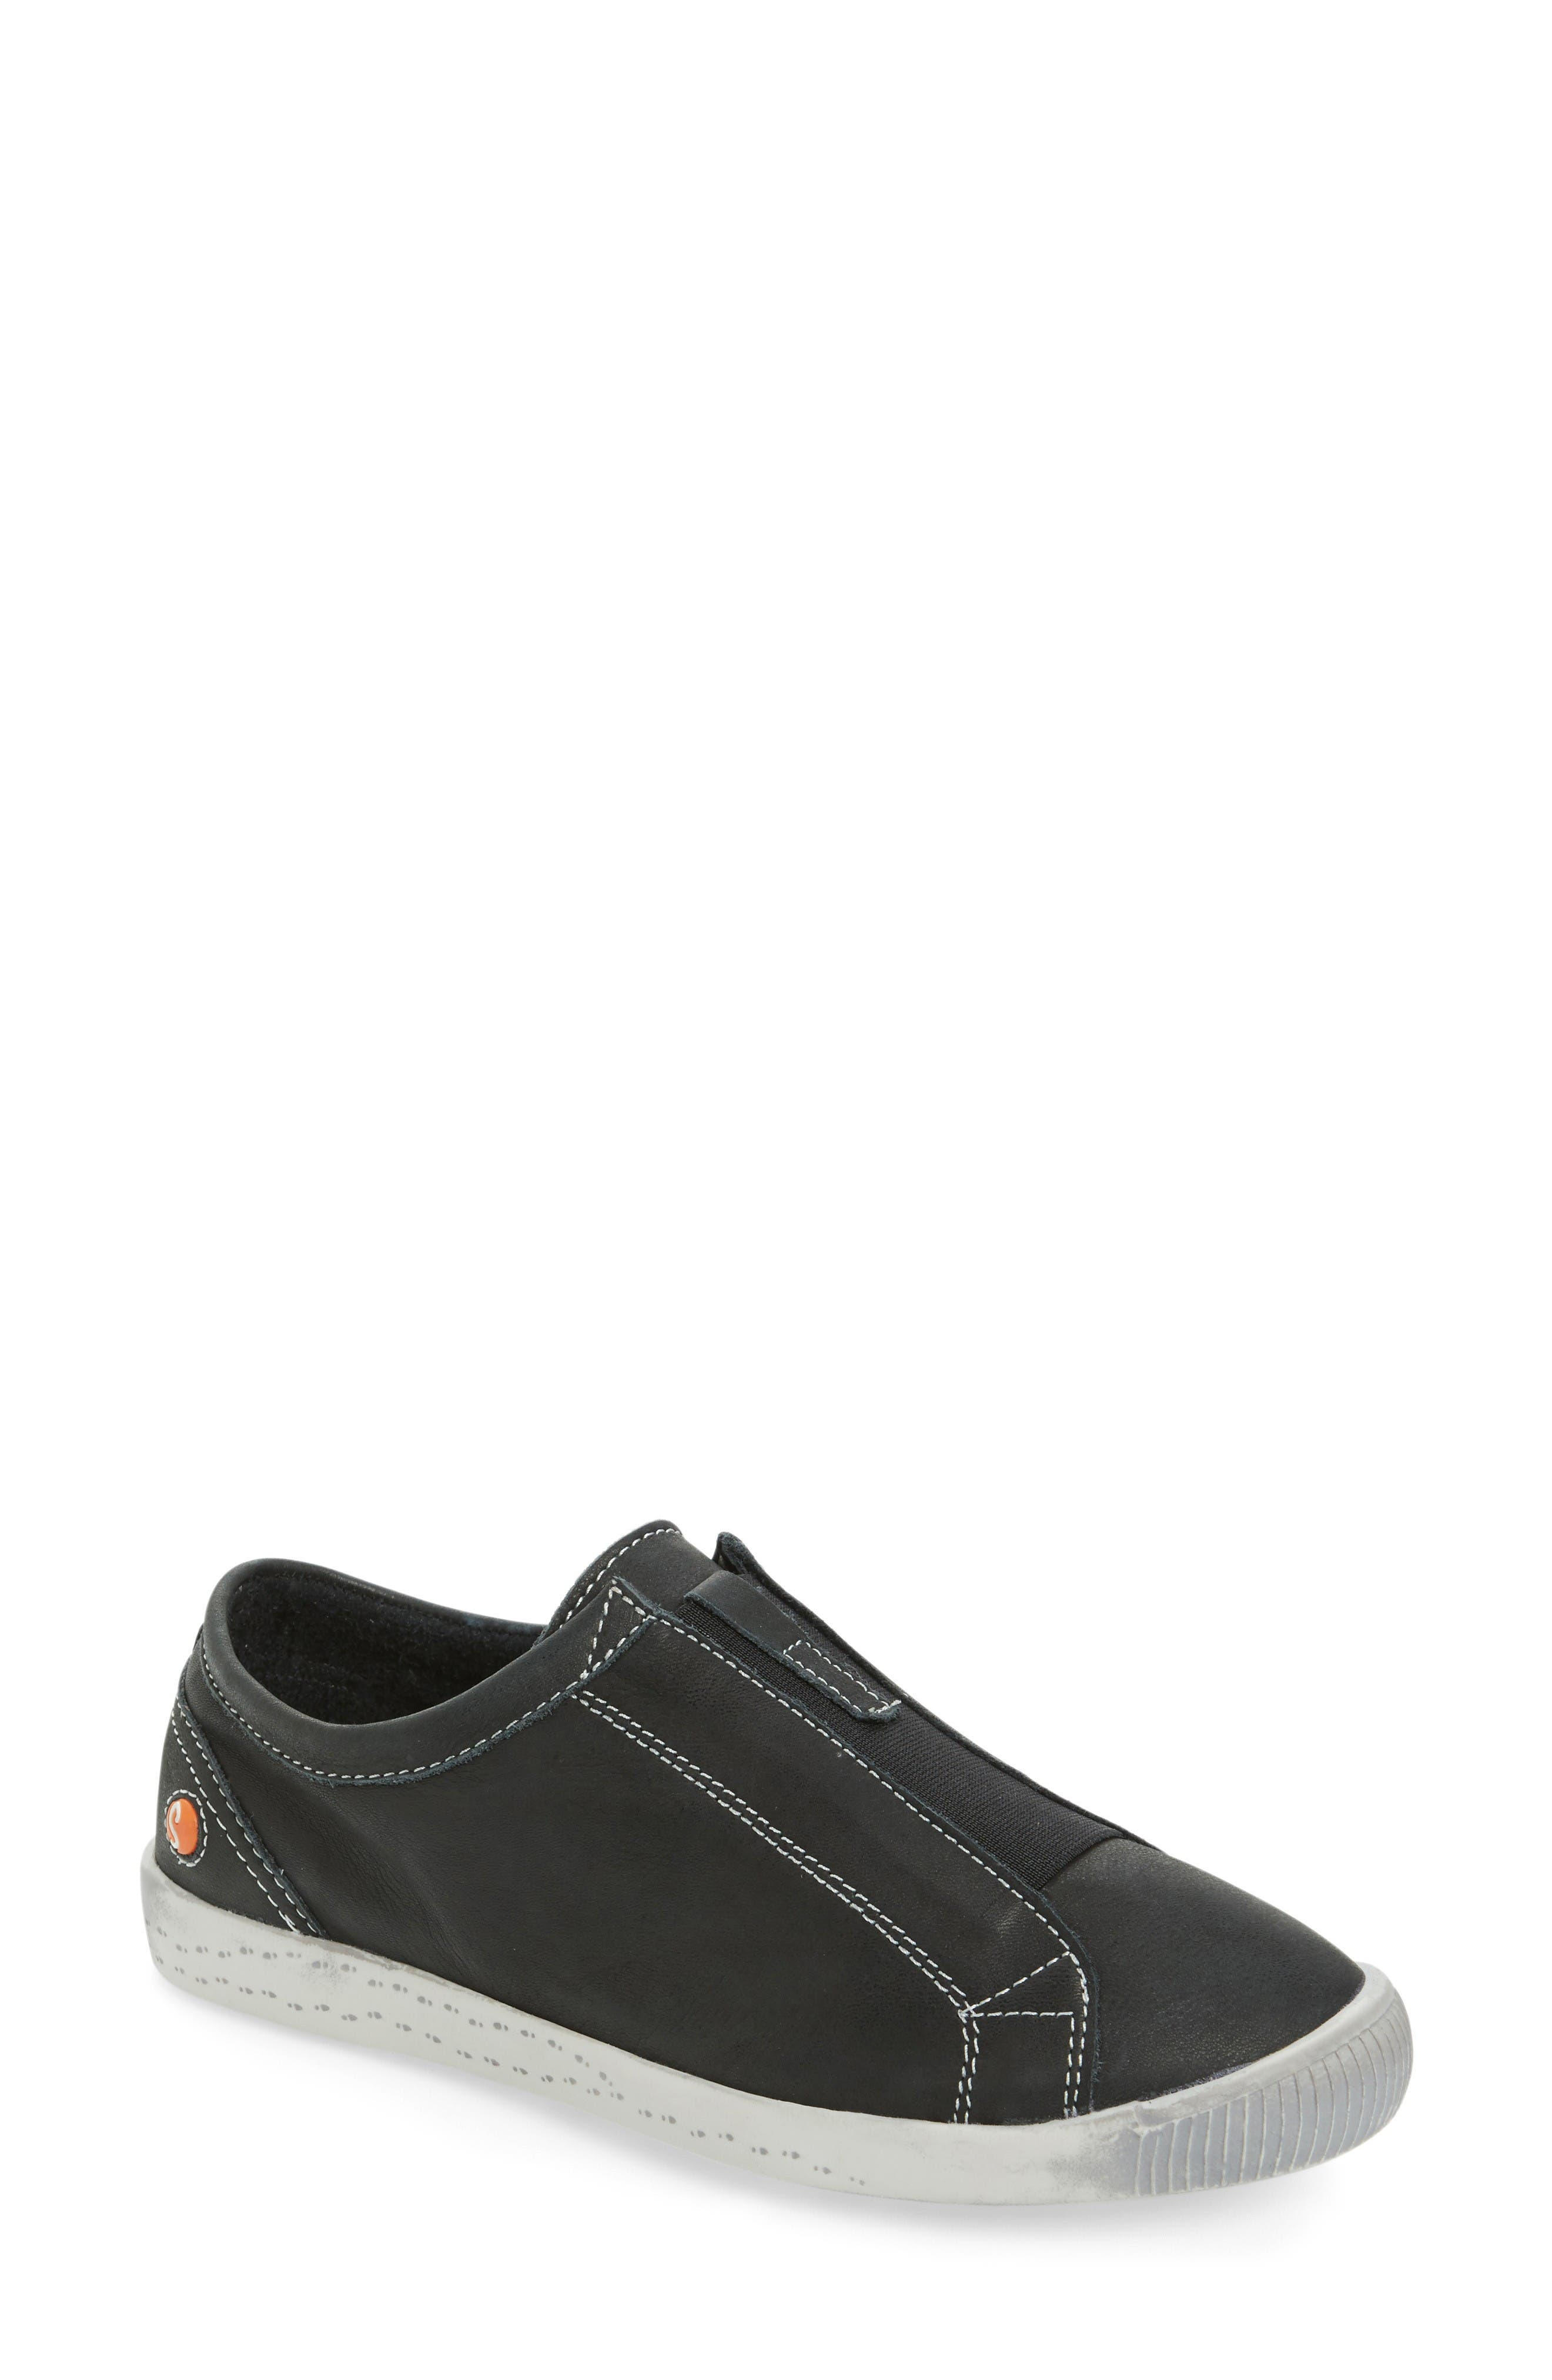 Main Image - Softinos by Fly London Ilo Slip-On Sneaker (Women)